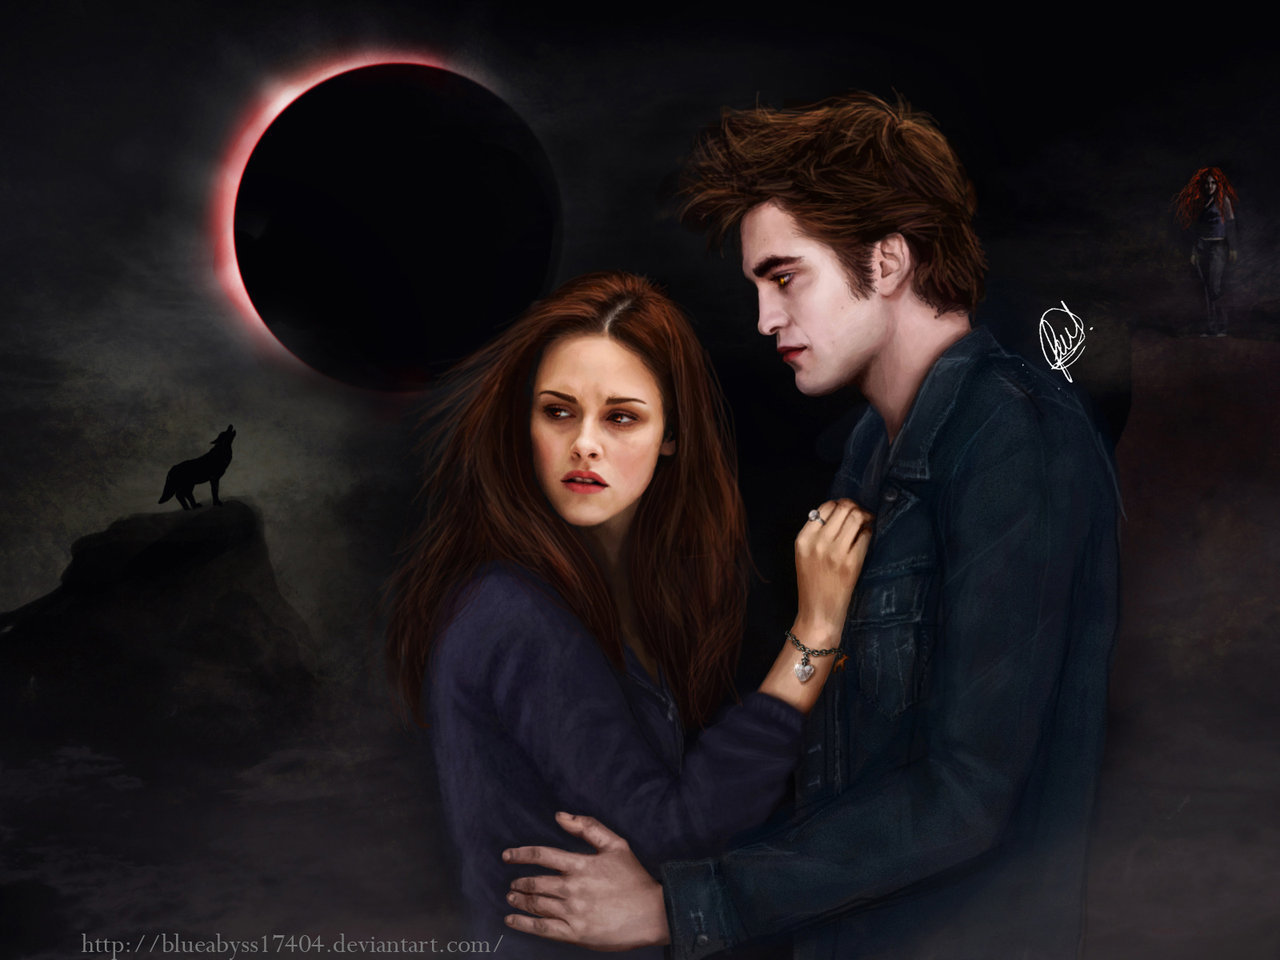 Eclipse (fanmade) - The Twilight saga: Eclipse Wallpaper (16914306) - Fanpop